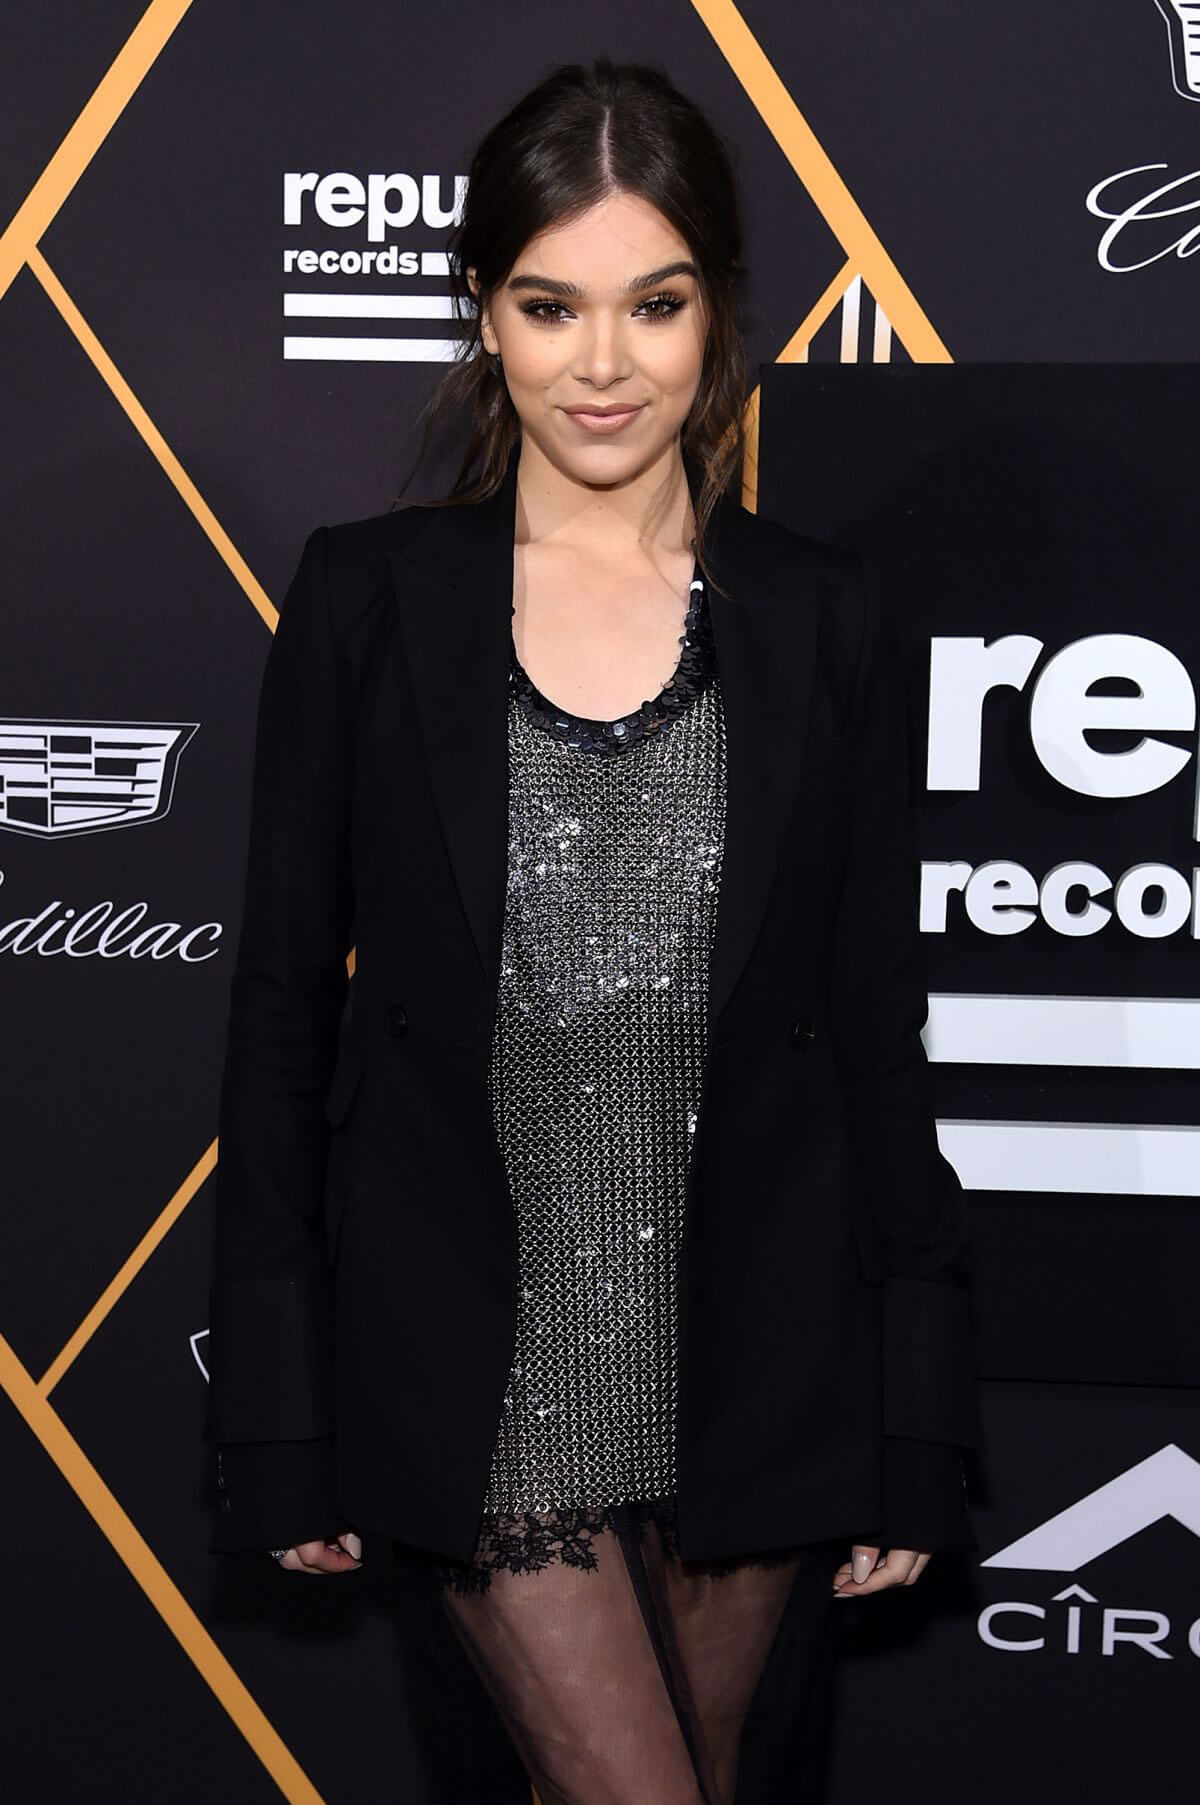 Hailee Steinfeld Stills at Republic Records Pre-Grammy Awards Party in New York 2018/01/26